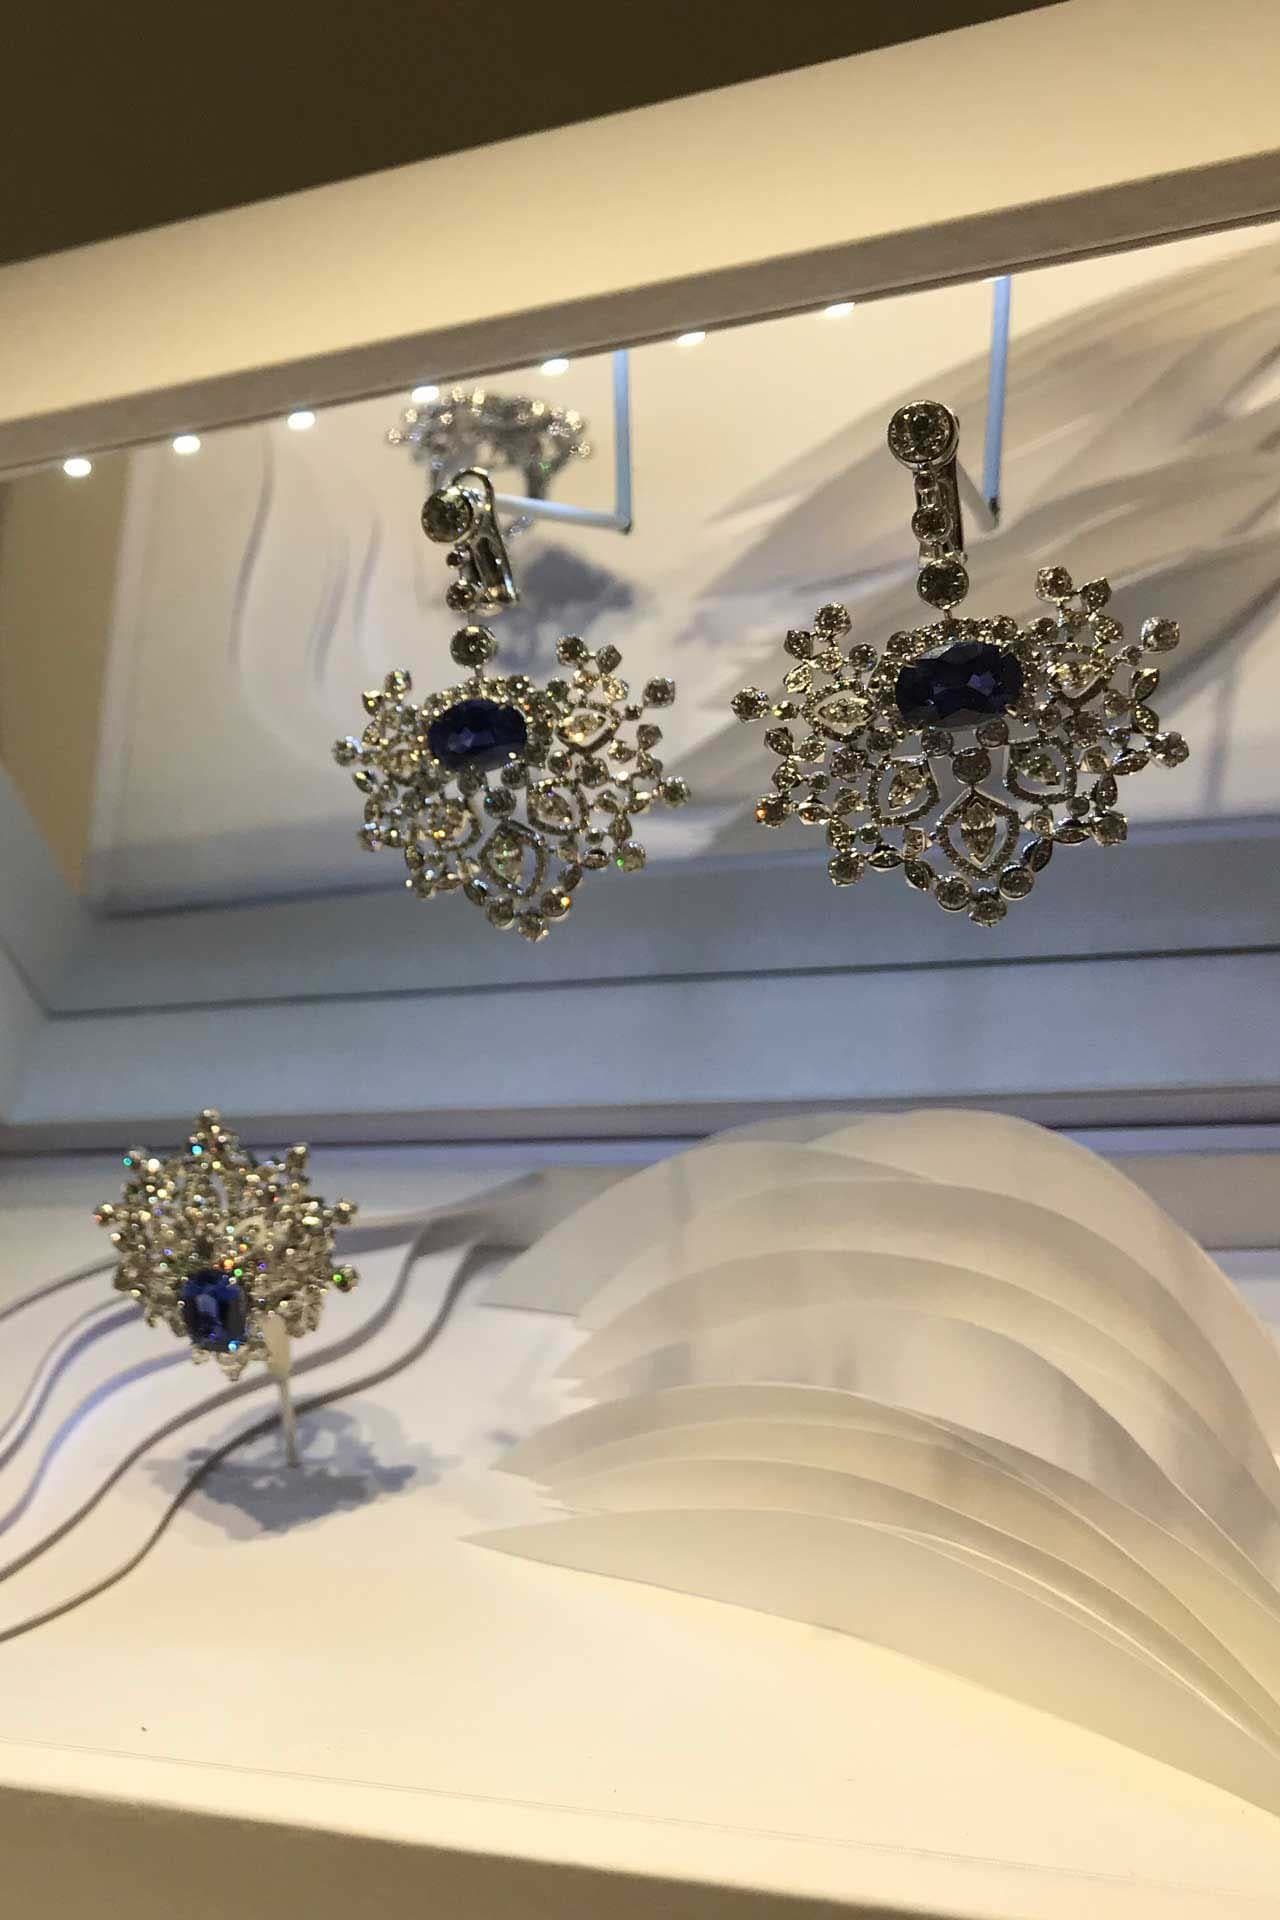 Chaumet's diamond earrings and brooch set in white gold with sapphires from Ceylon. Image credit: Natasha Cowan